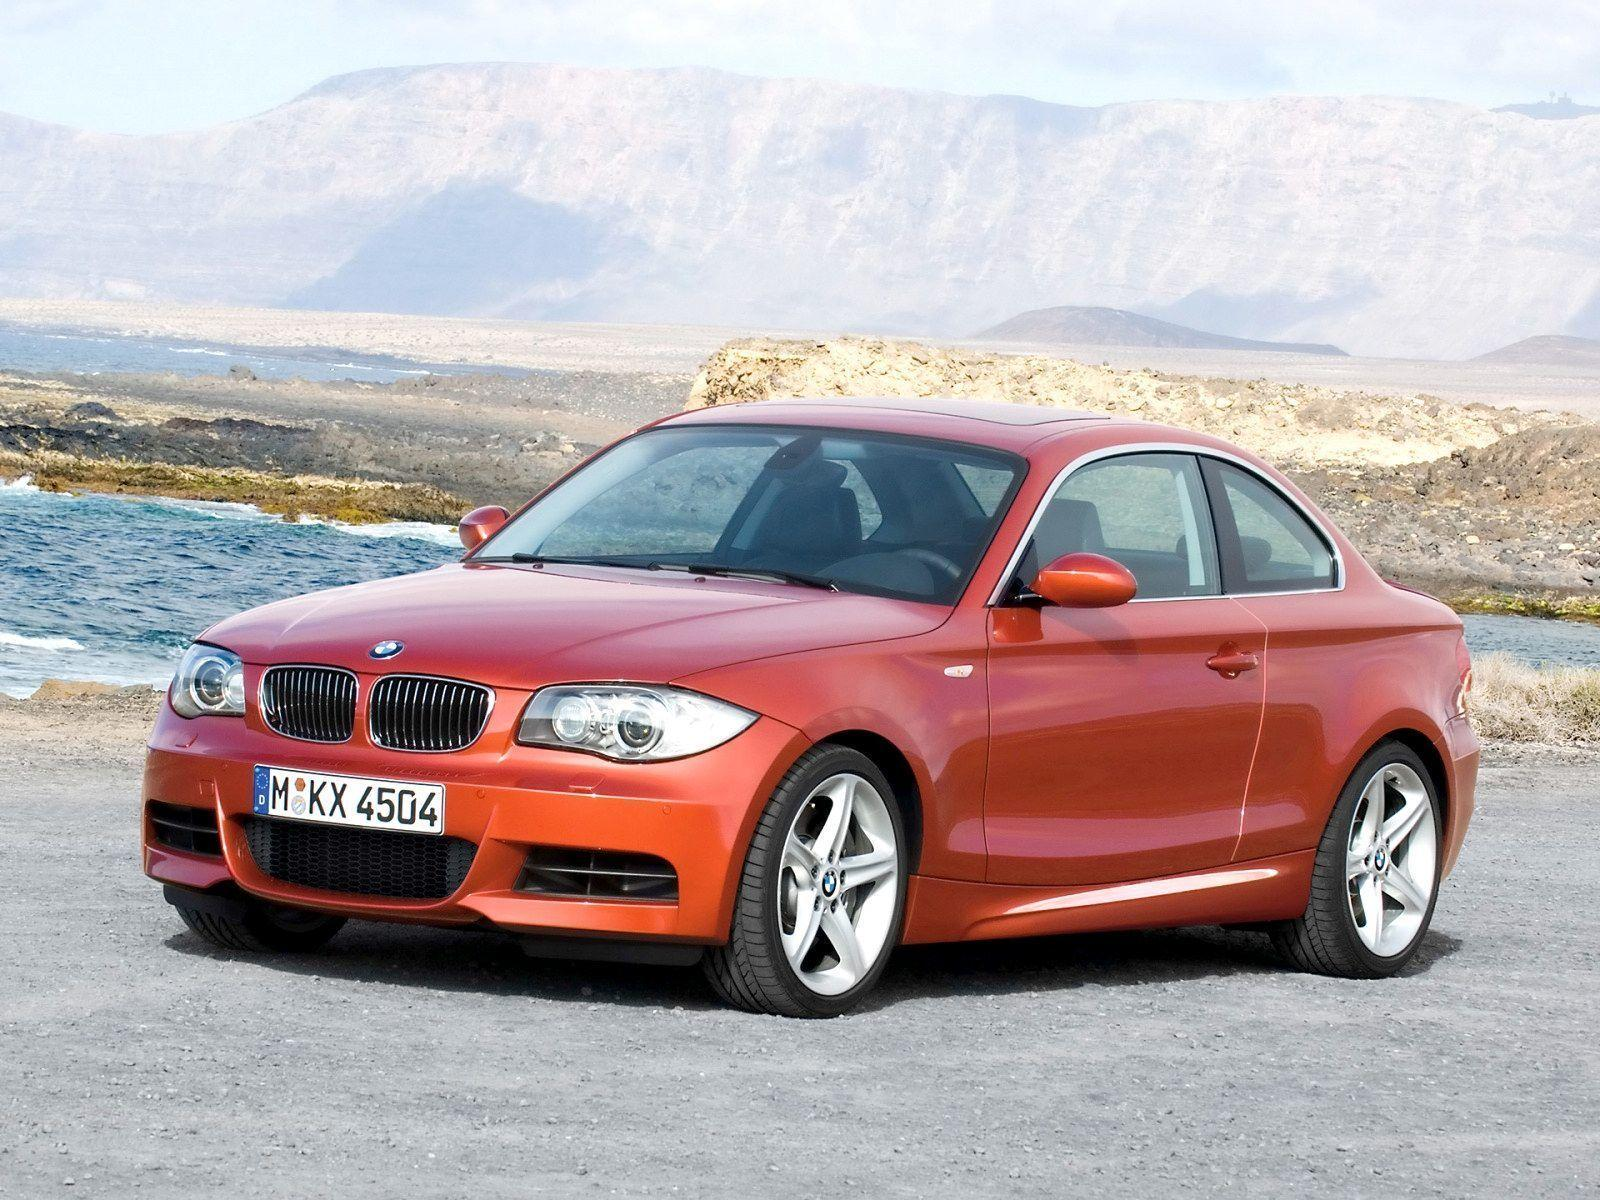 2008 BMW 1 Series Coupe Wallpaper 06 - 1600x1200